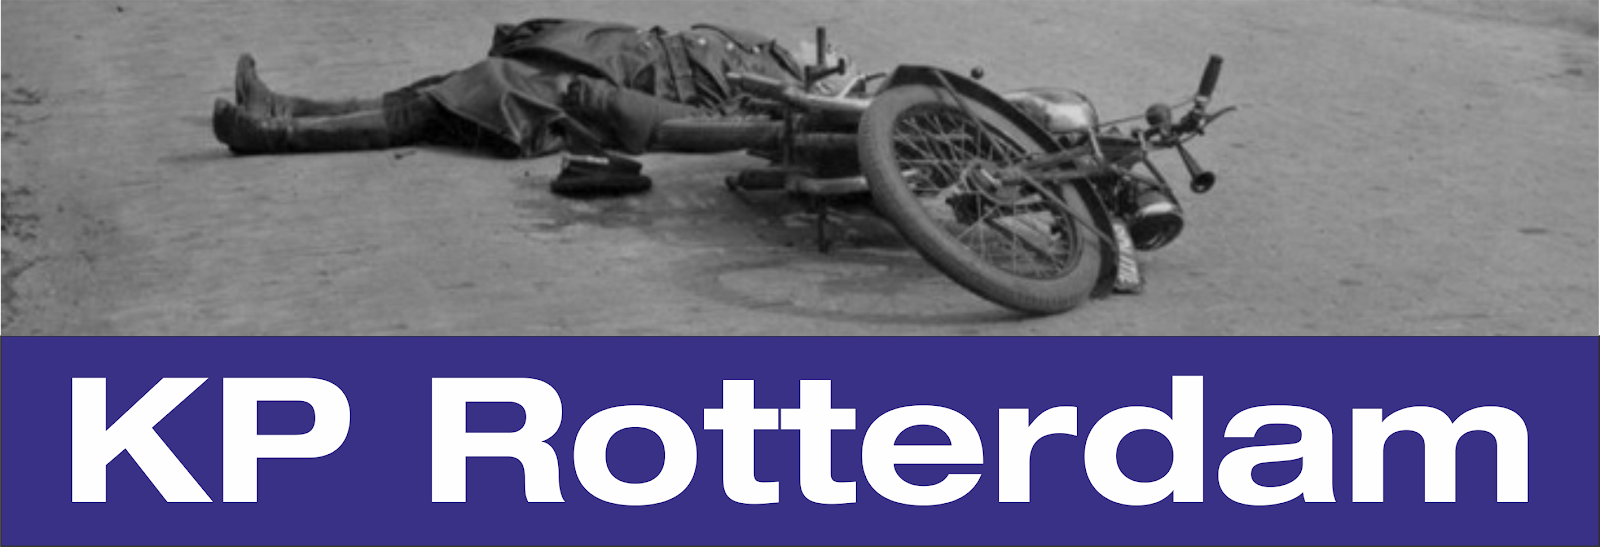 KP Rotterdam banner.png